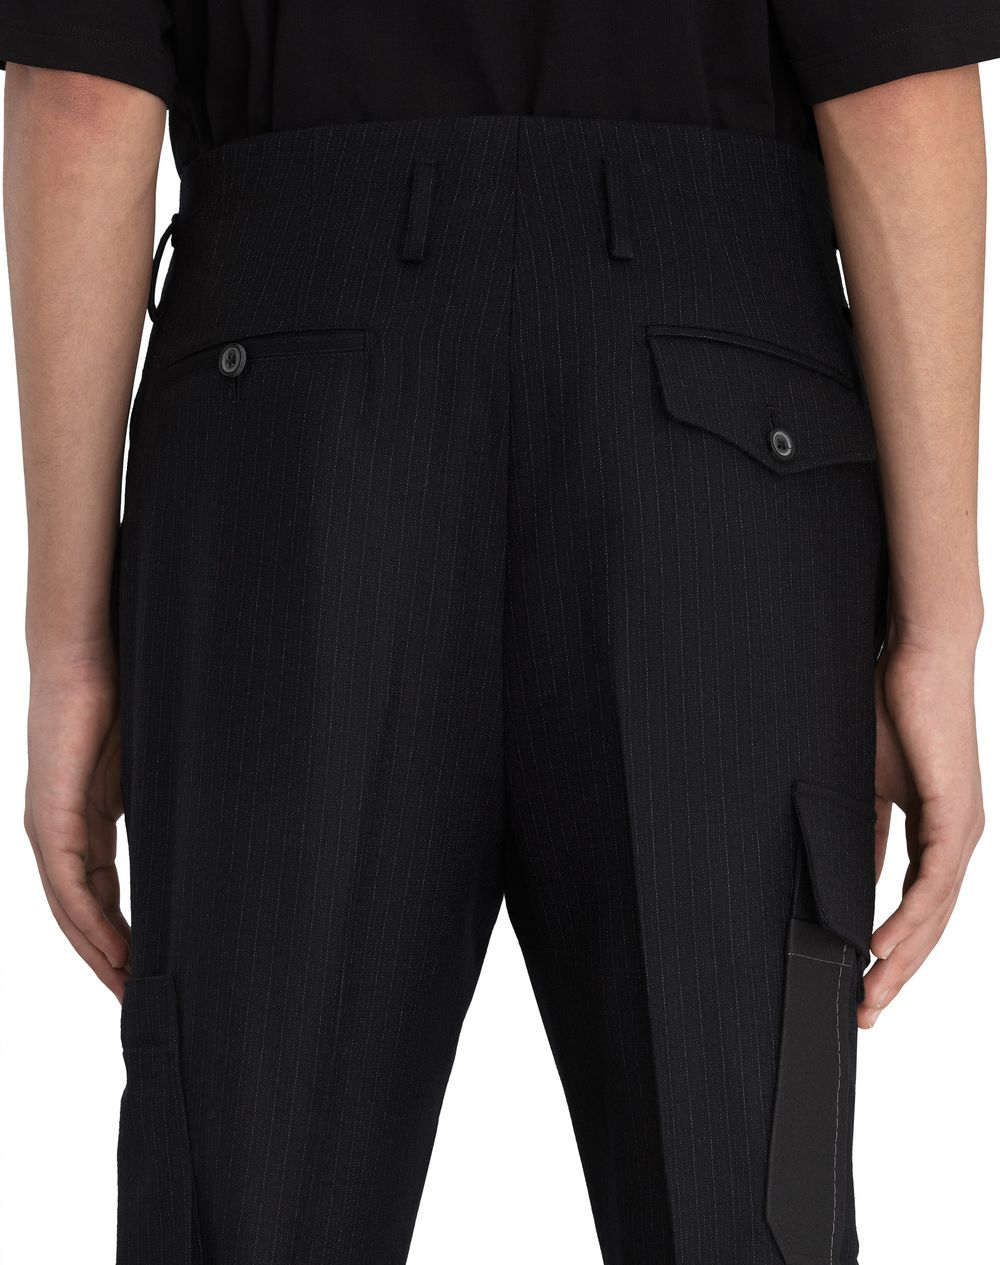 STRIPED COMPACT WOOL PANTS - Lanvin